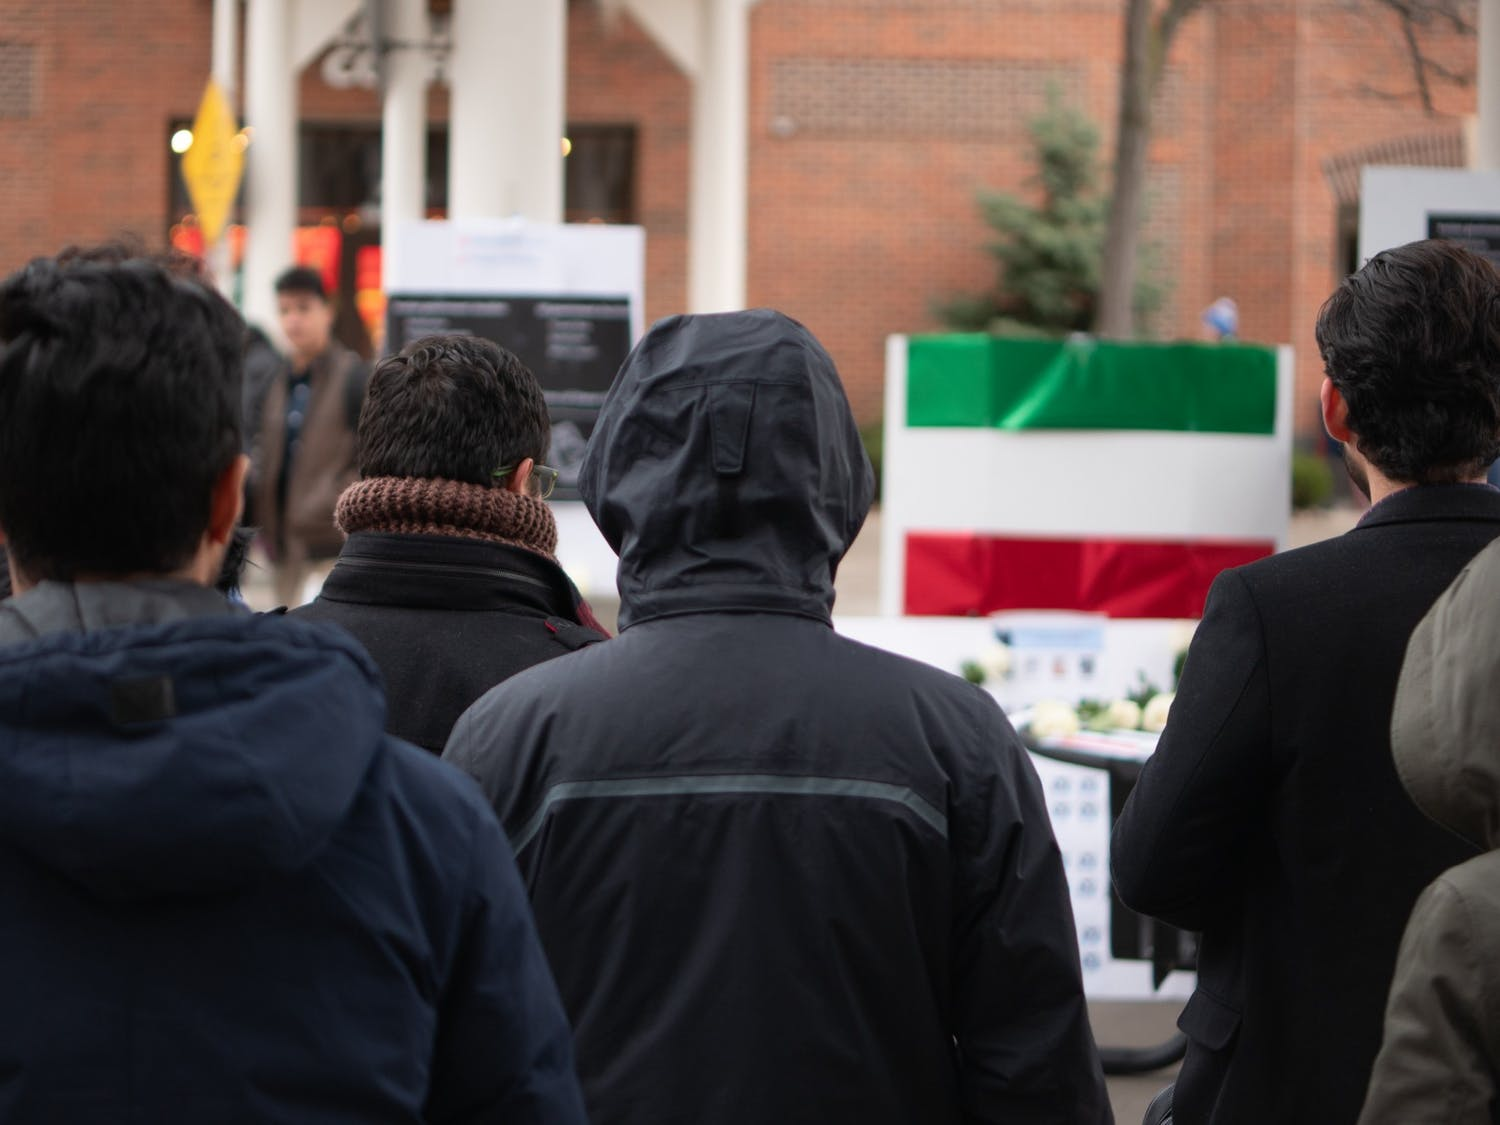 Iranian students and their supporters stand in solidarity outside Student Union on Thursday. The students brought light to the situation in Iran.